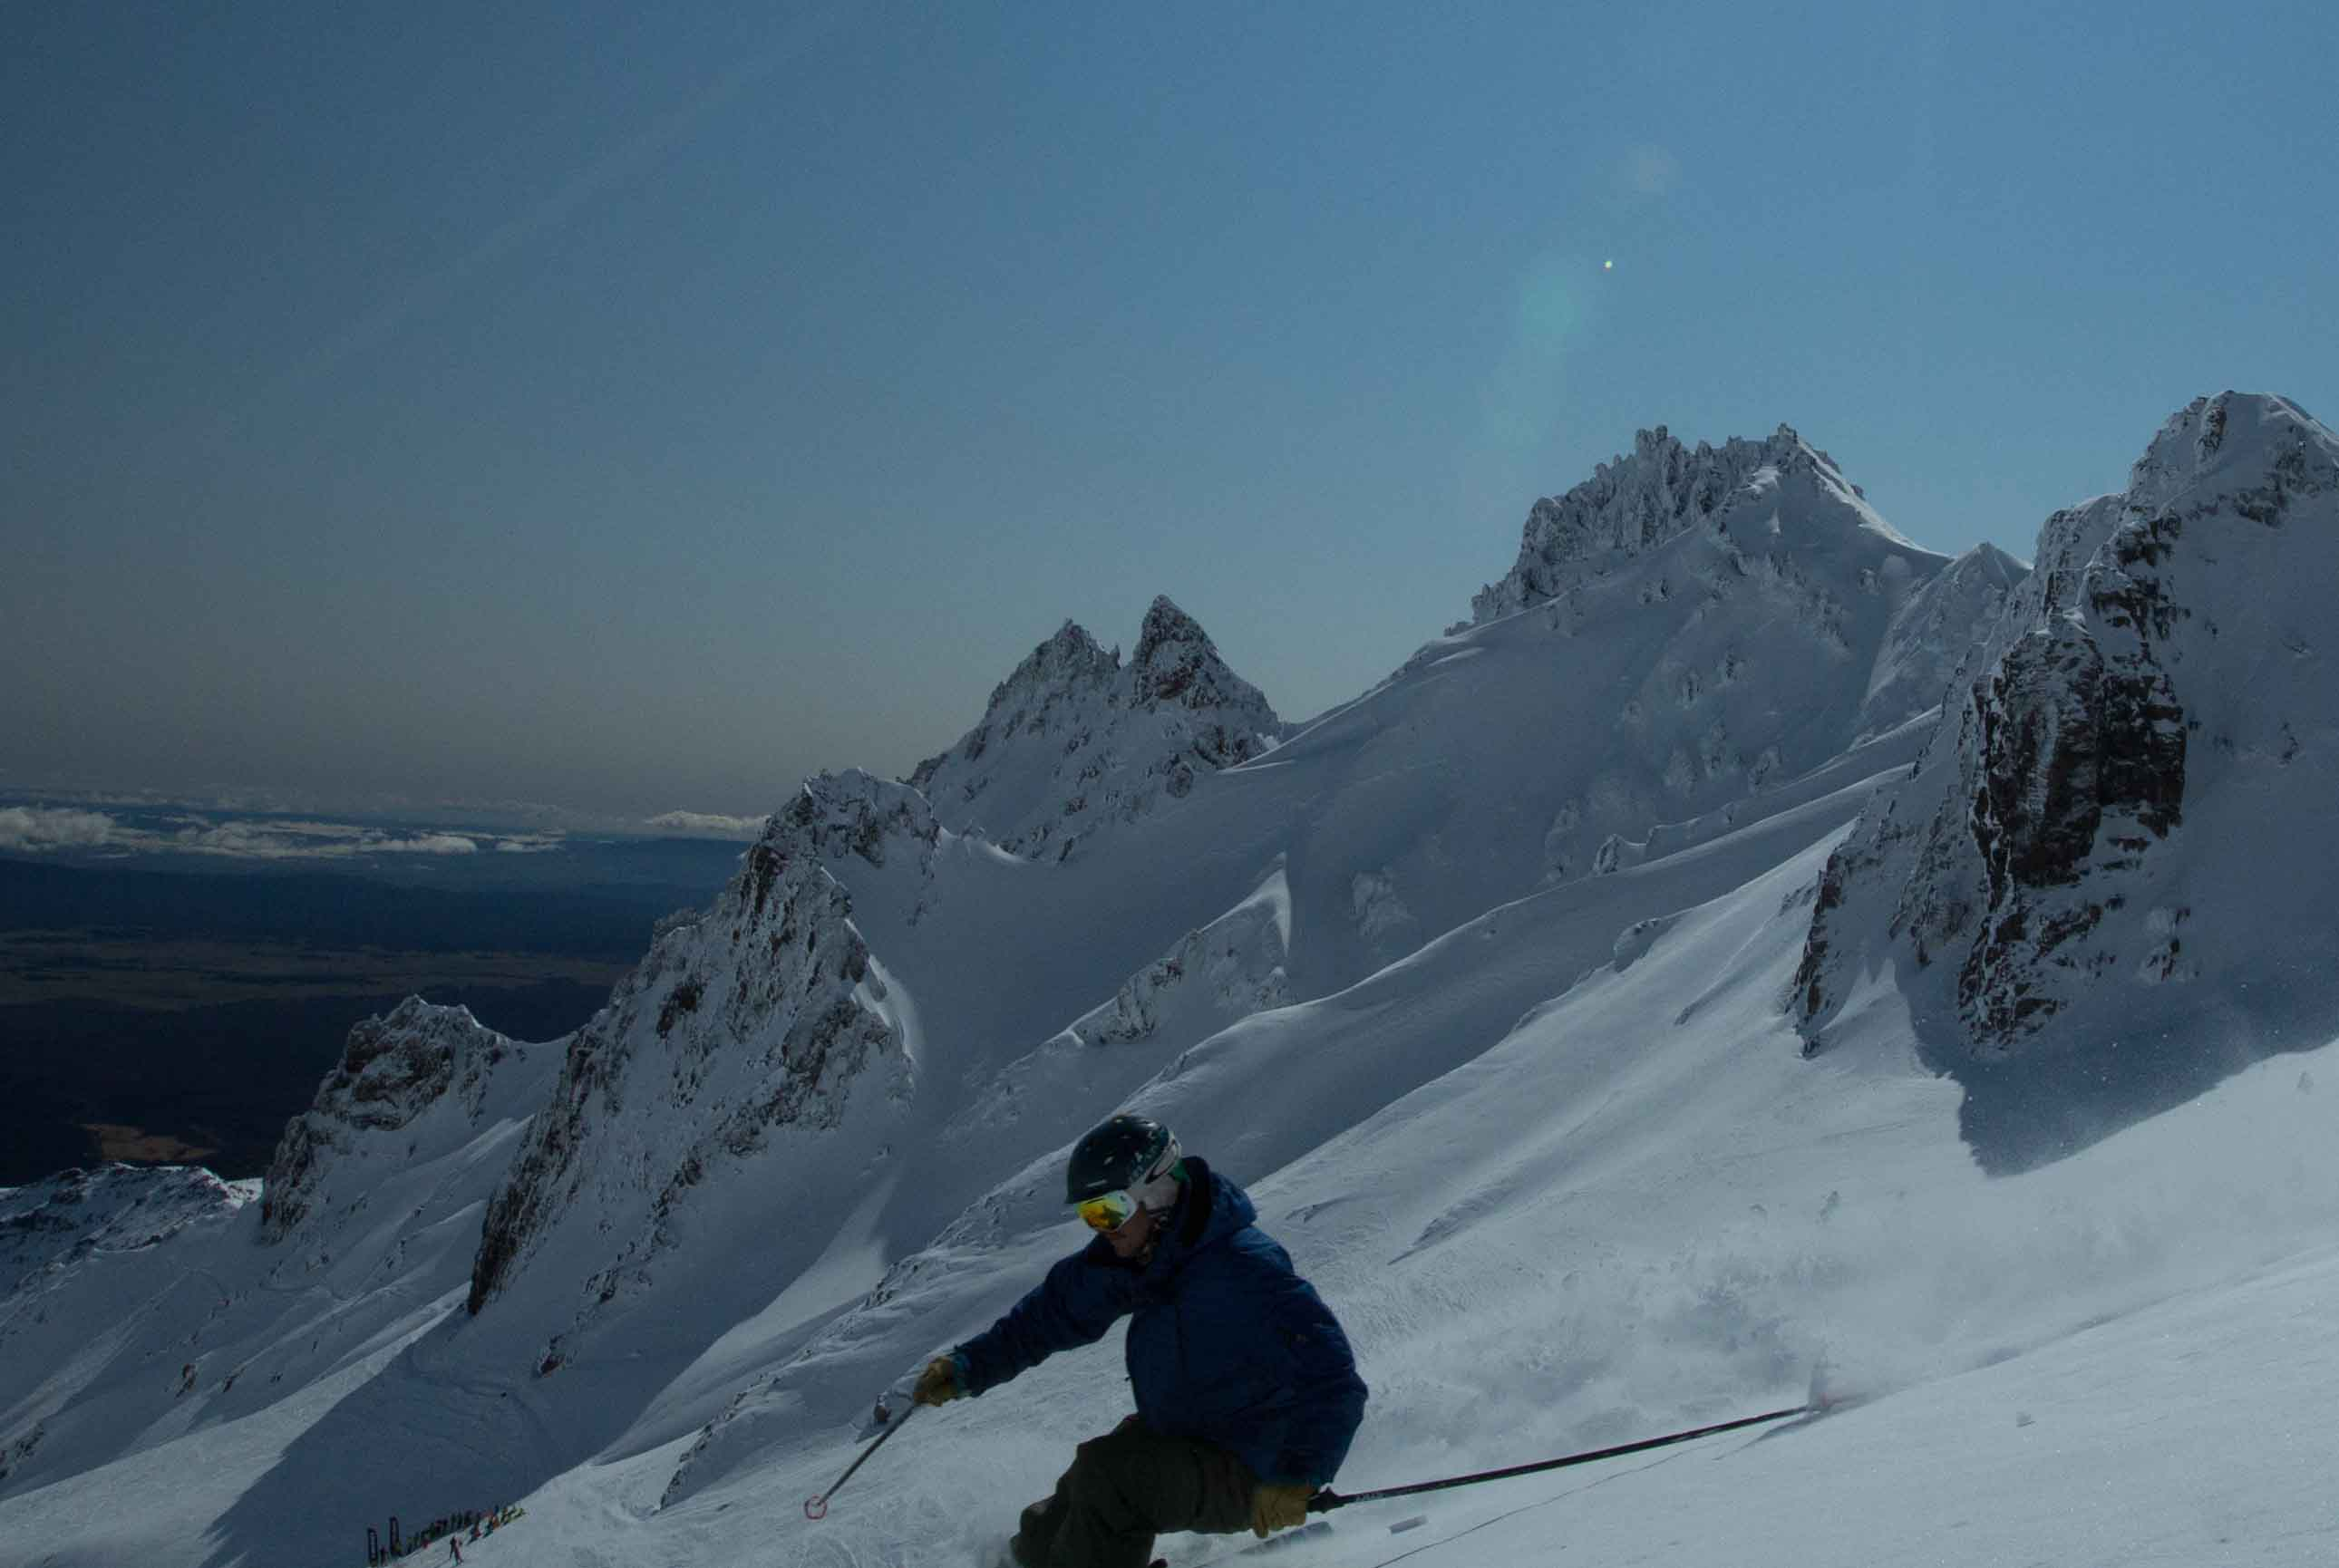 Skier with the Pinnacles of Mt Ruapehu in the background at Whakapapa